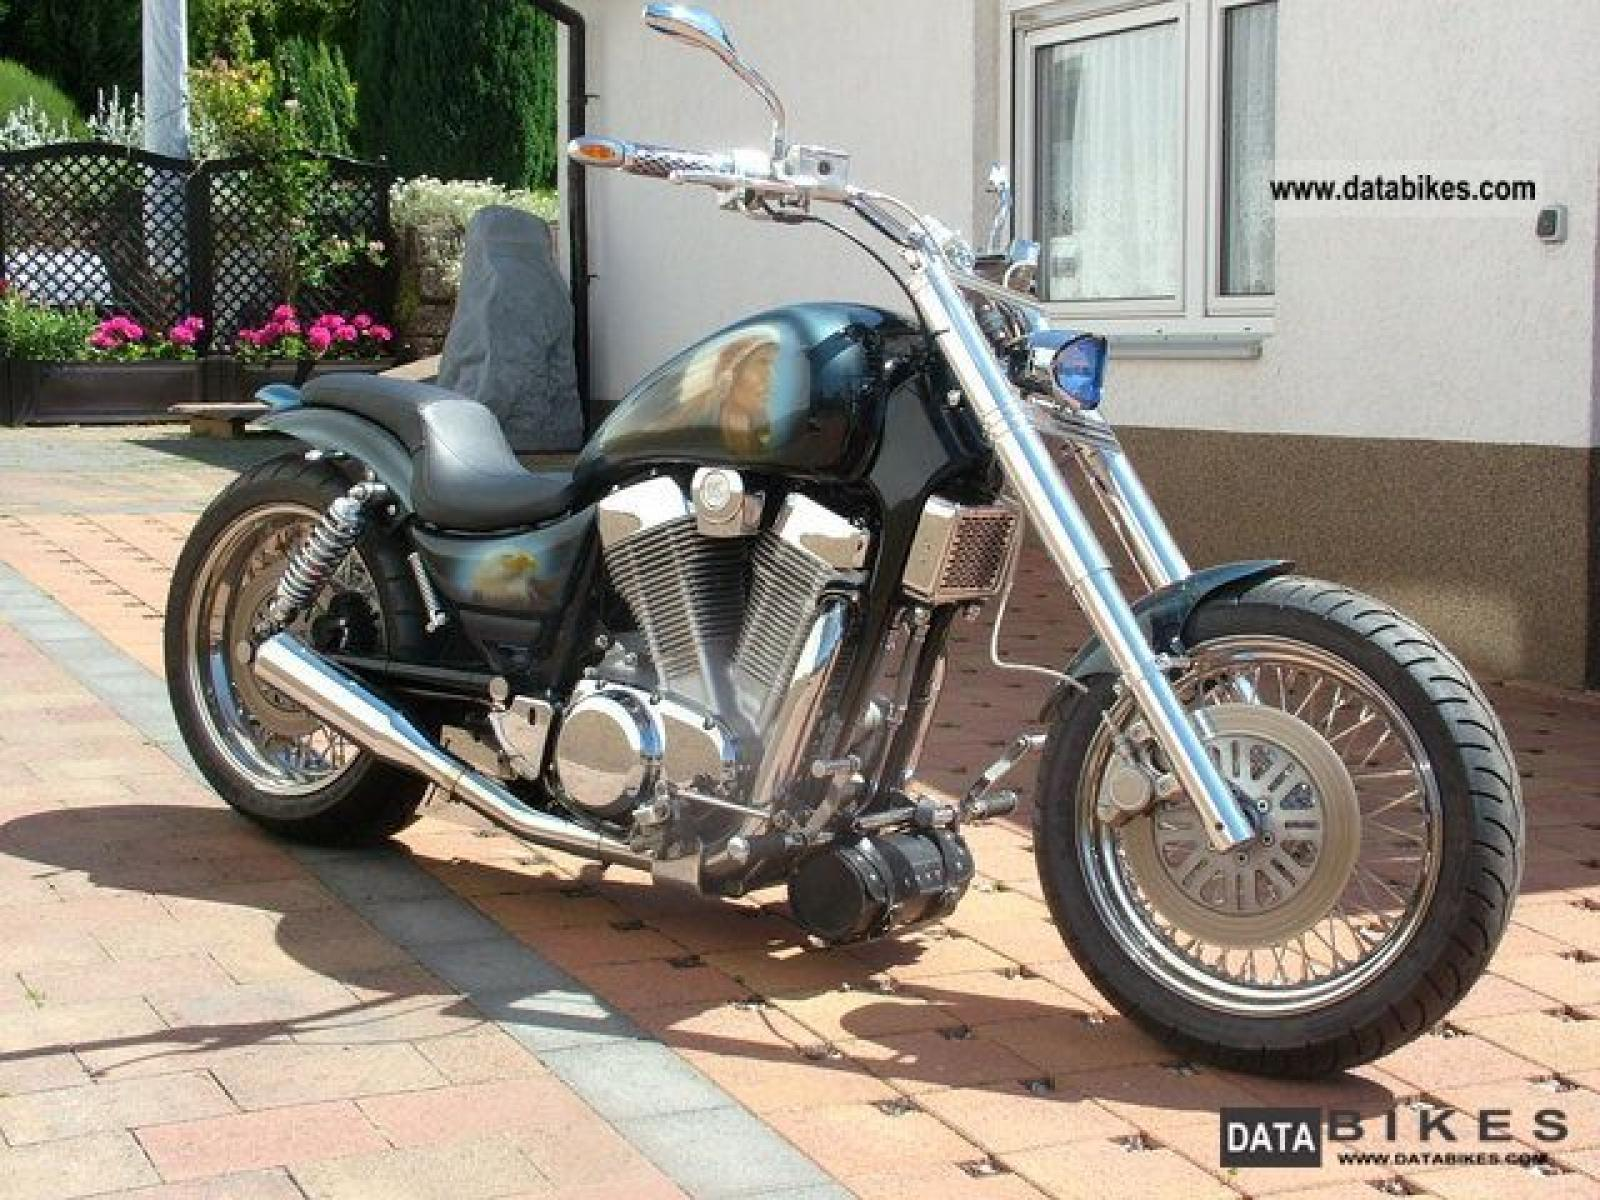 hight resolution of suzuki intruder 800 wiring diagram wiring librarysuzuki intruder 800 wiring diagram